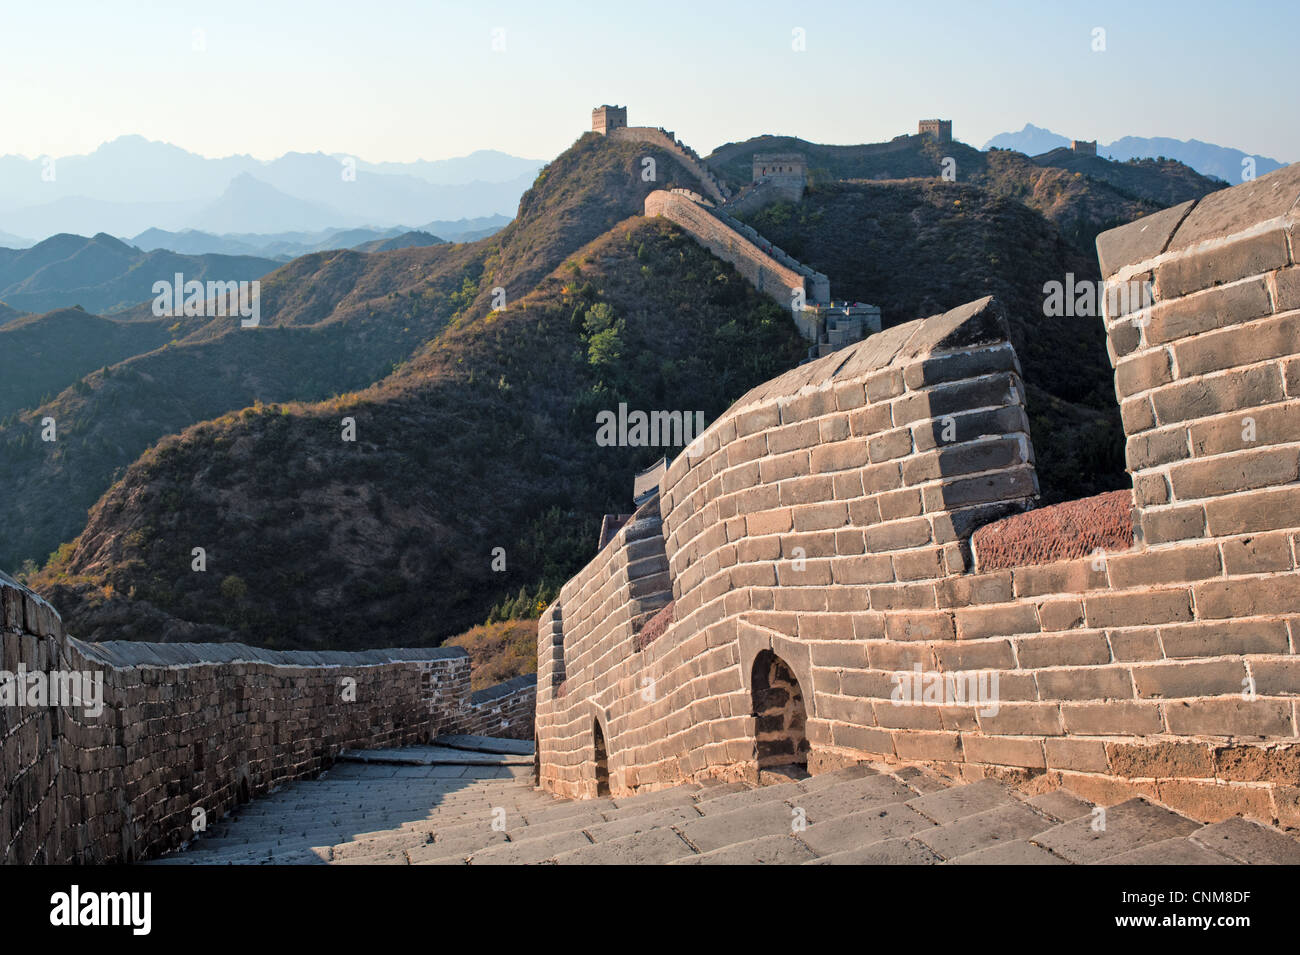 Great wall in JinShanling, Hebei province - Stock Image